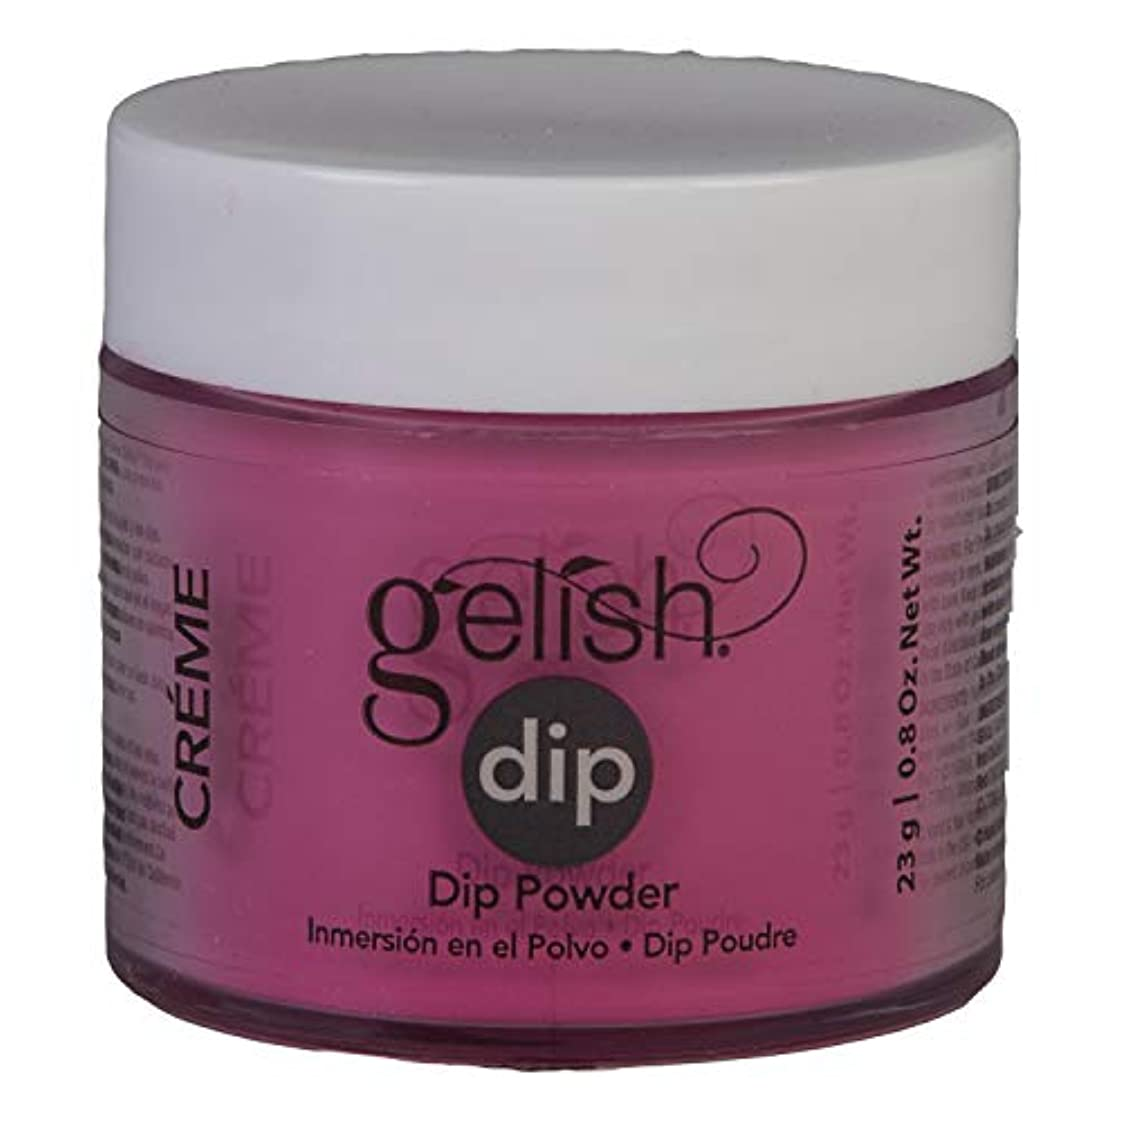 真珠のような運ぶ書士Harmony Gelish - Dip Powder - Rocketman Collection - It's The Shades - 23g / 0.8oz